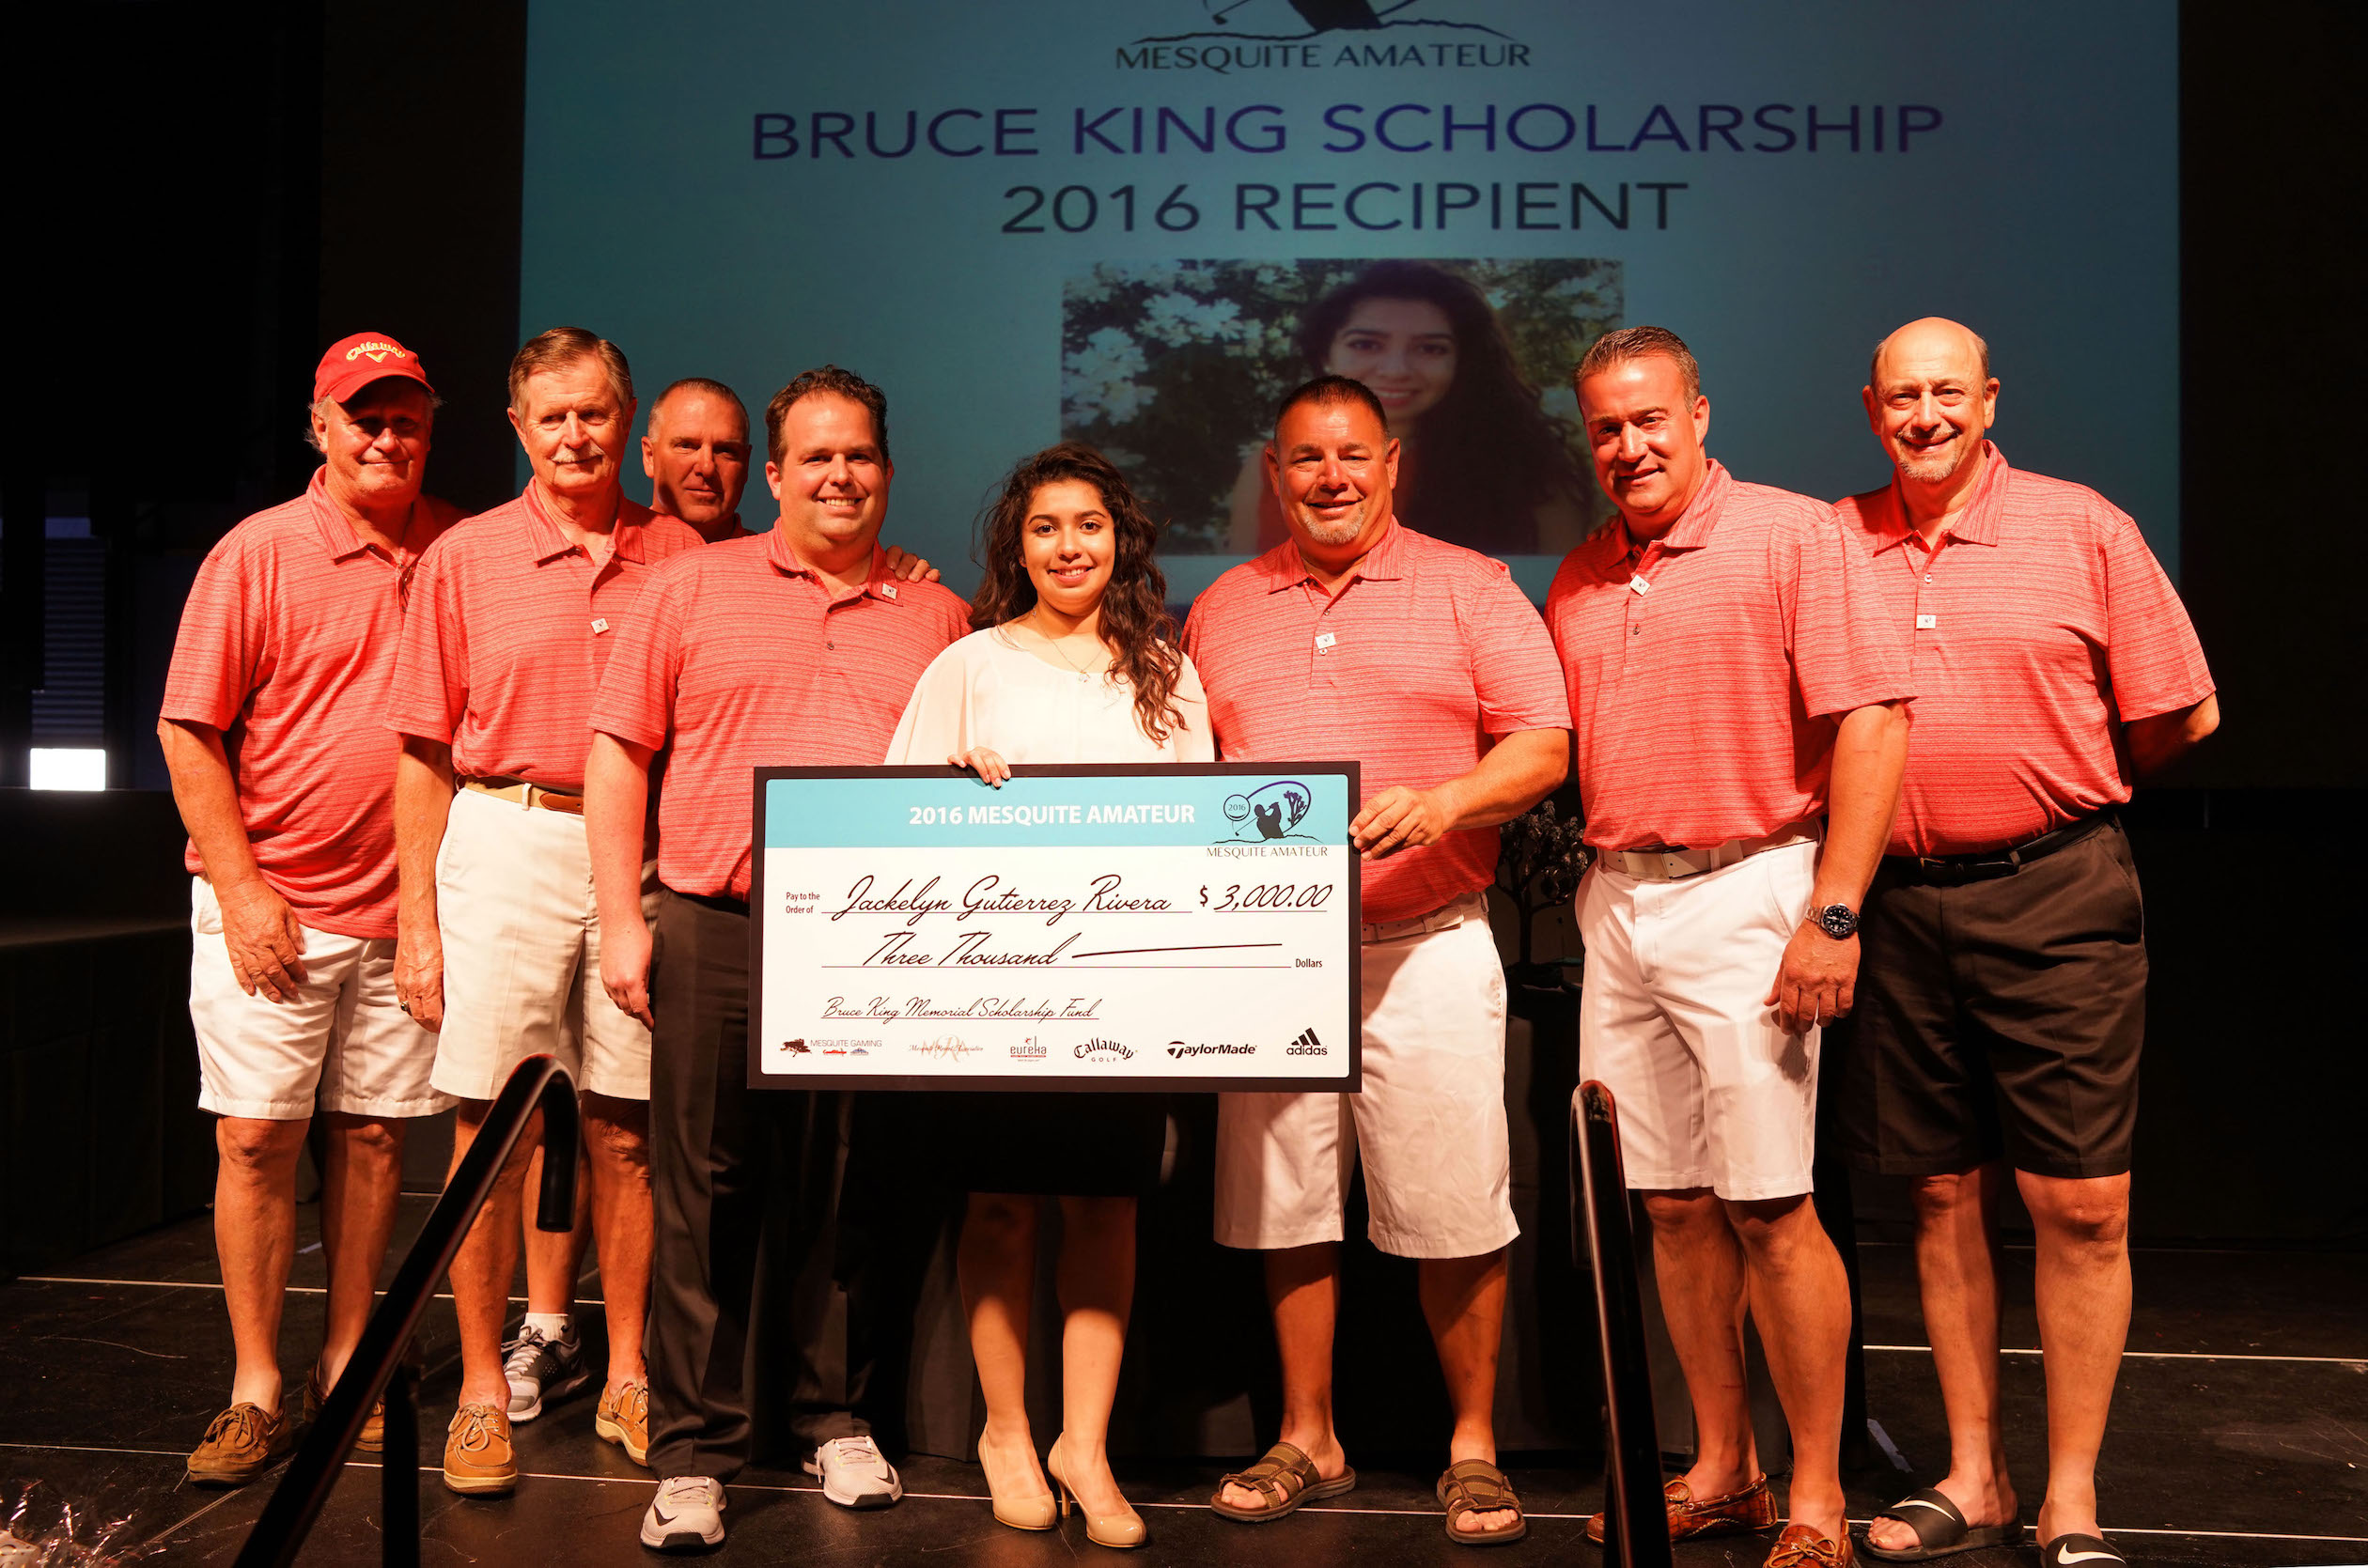 Mesquite Amateur tourney awards memorial scholarship